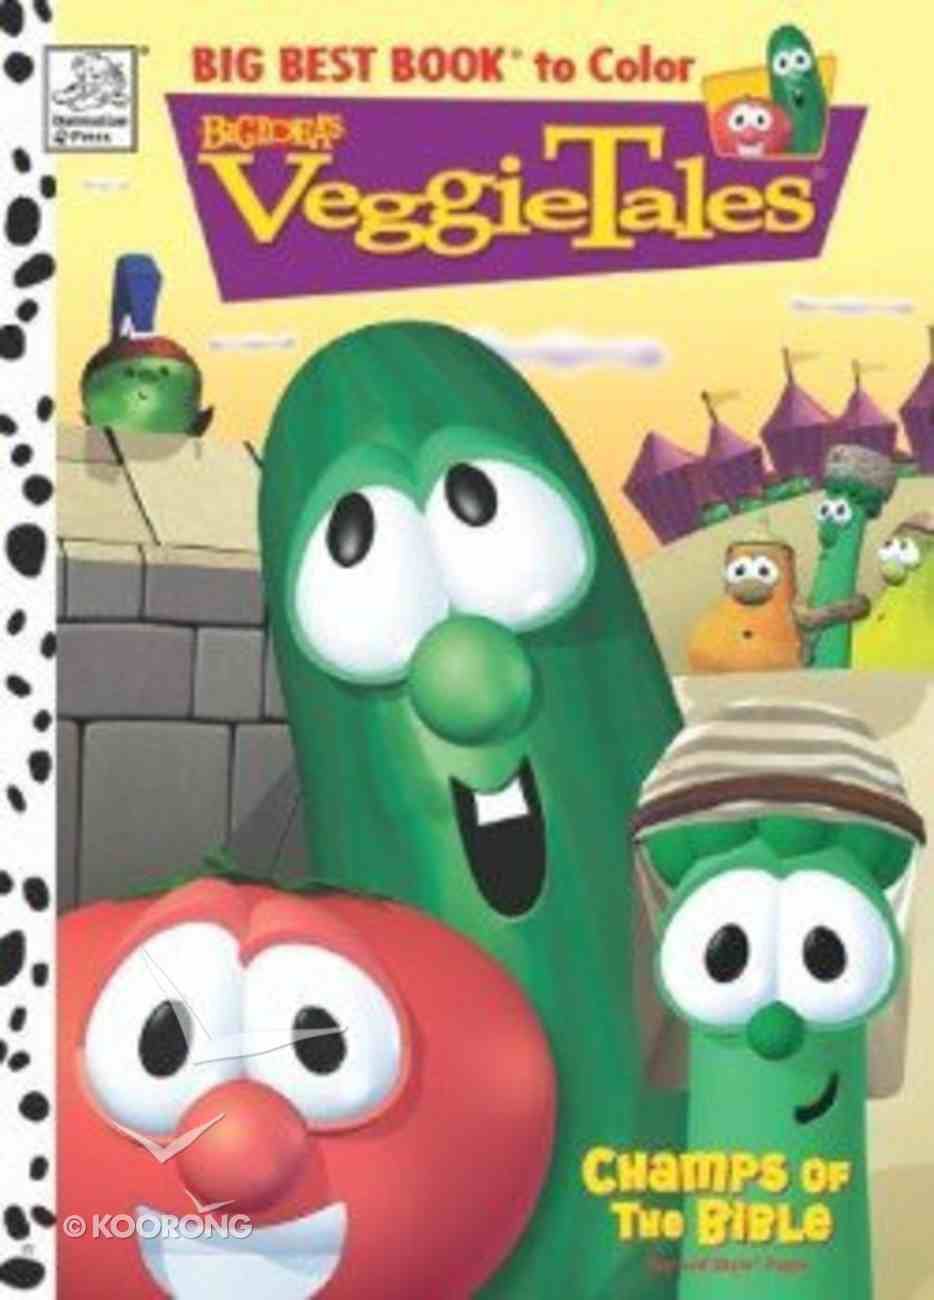 Champs of the Bible (Veggie Tales (Veggietales) Series) Paperback